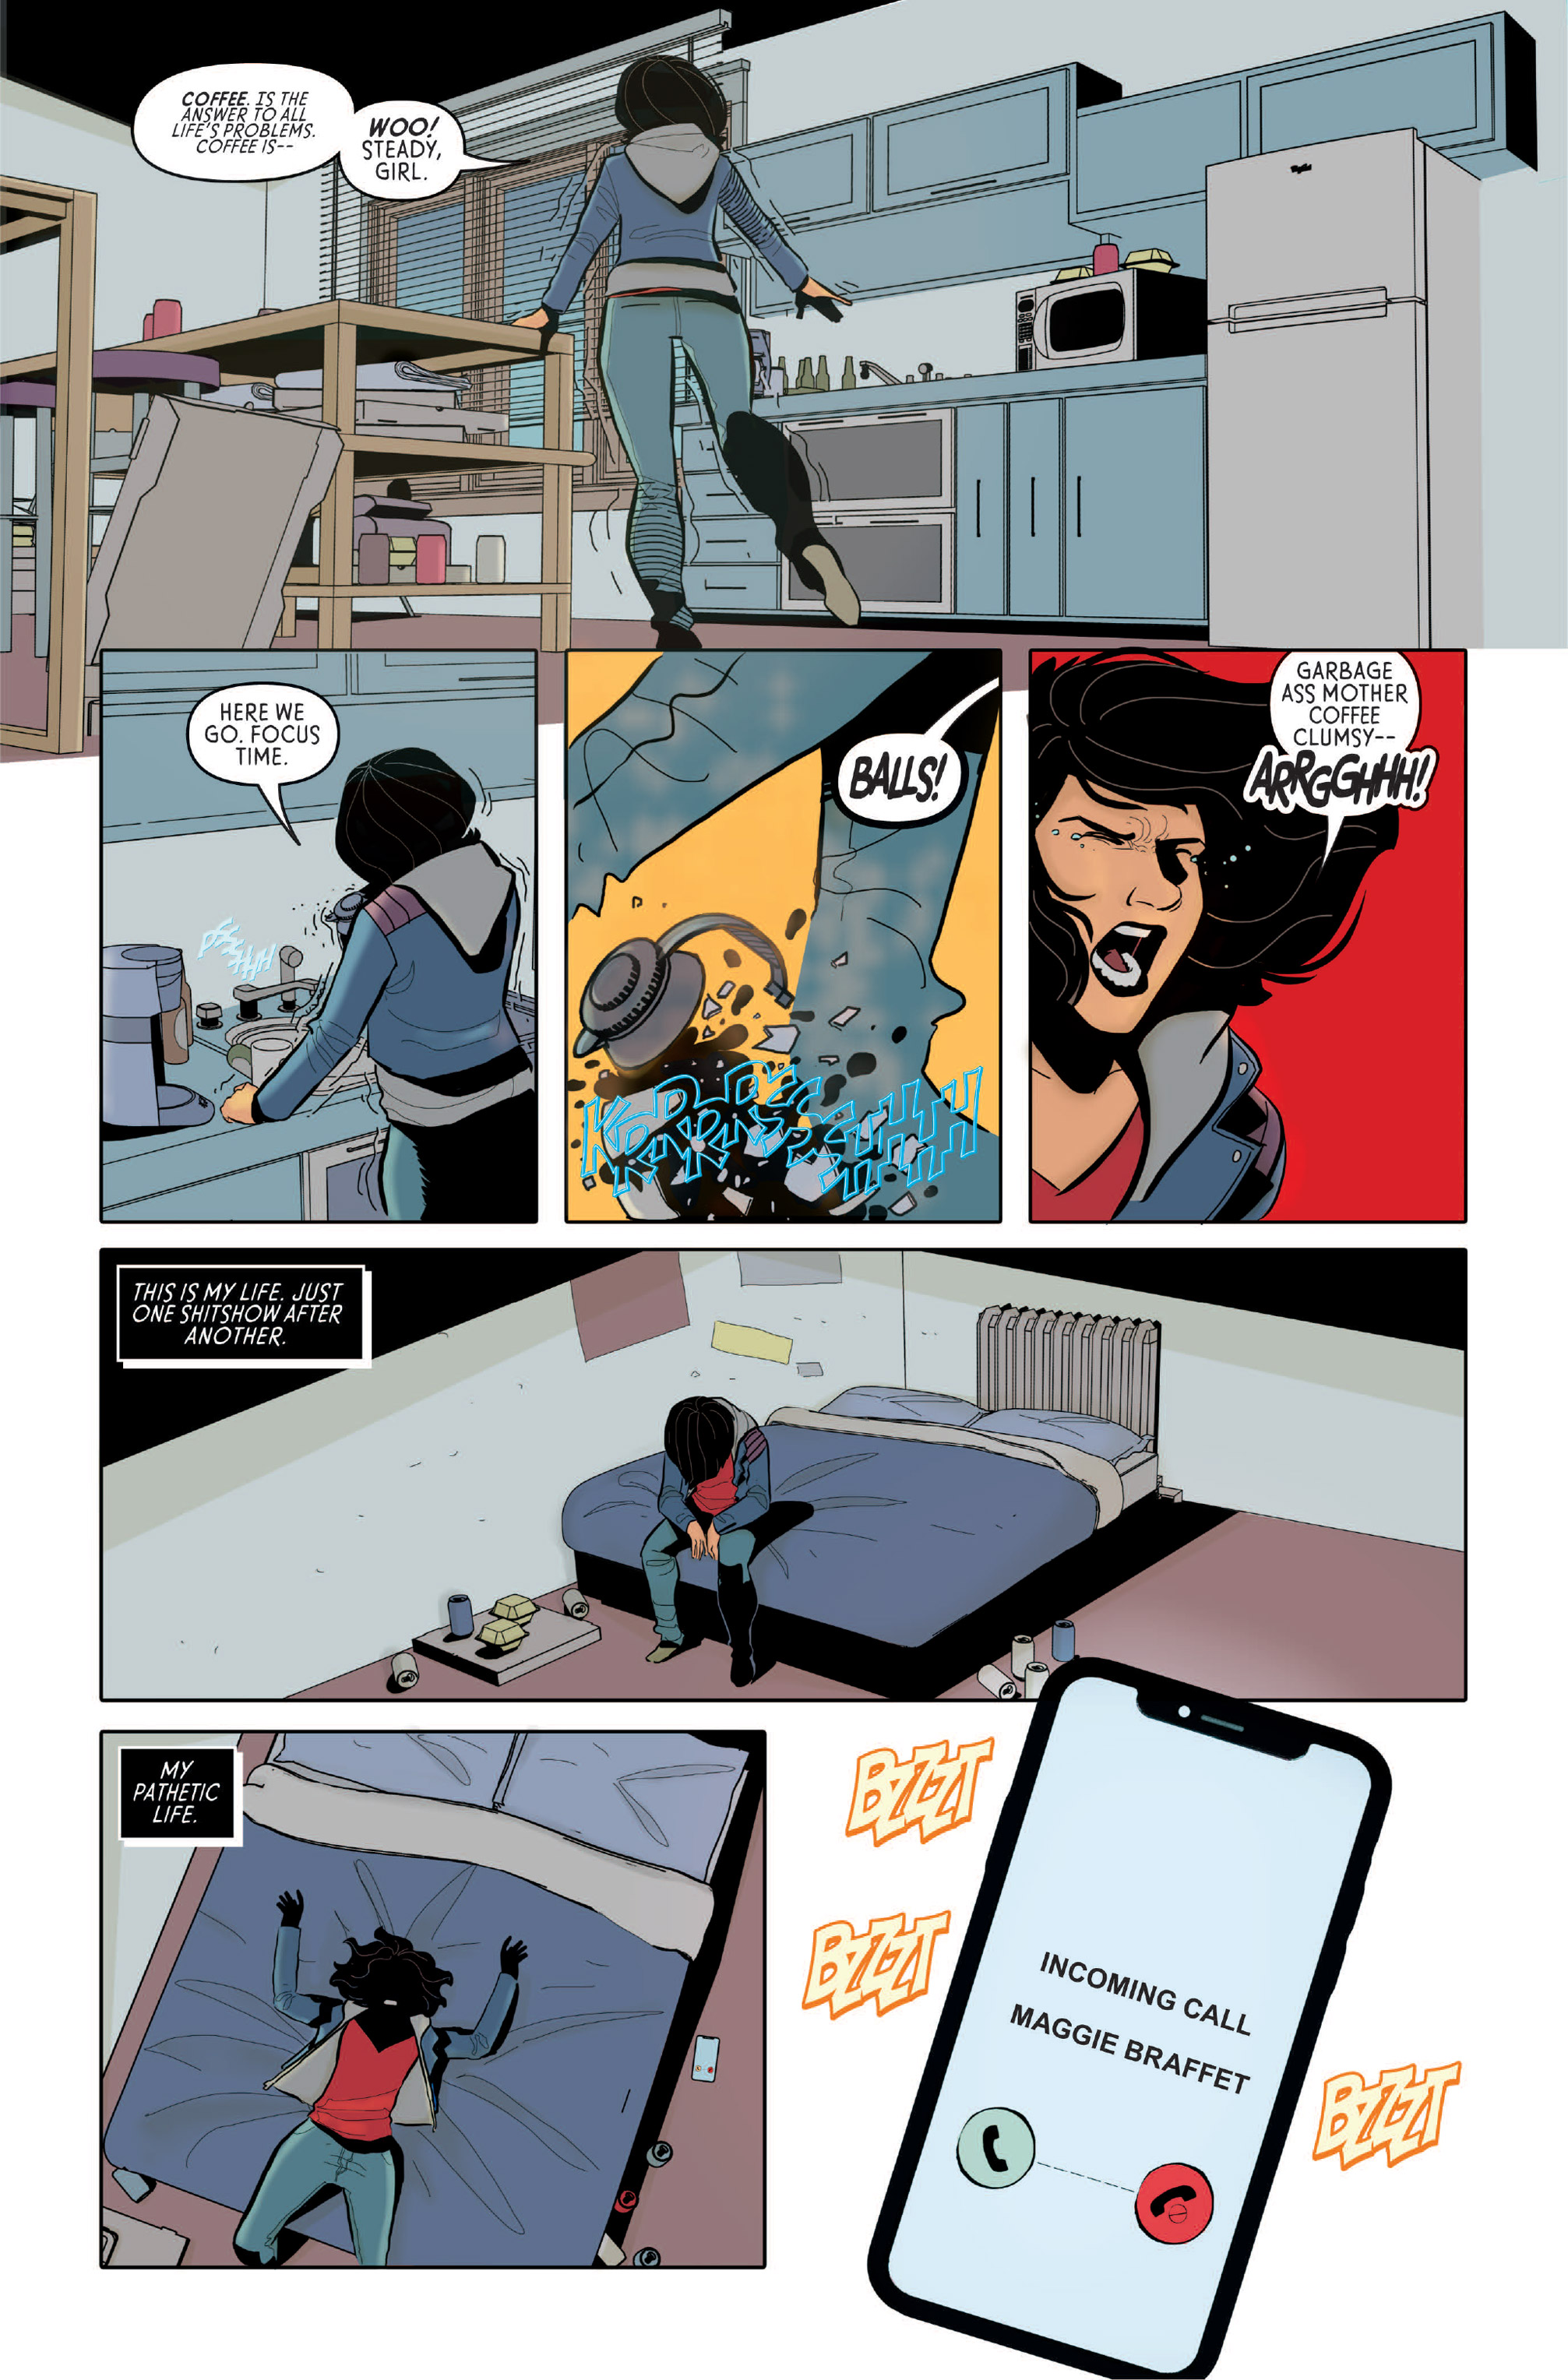 The Black Ghost #2; Page 14, New Wave Comics, 2019.